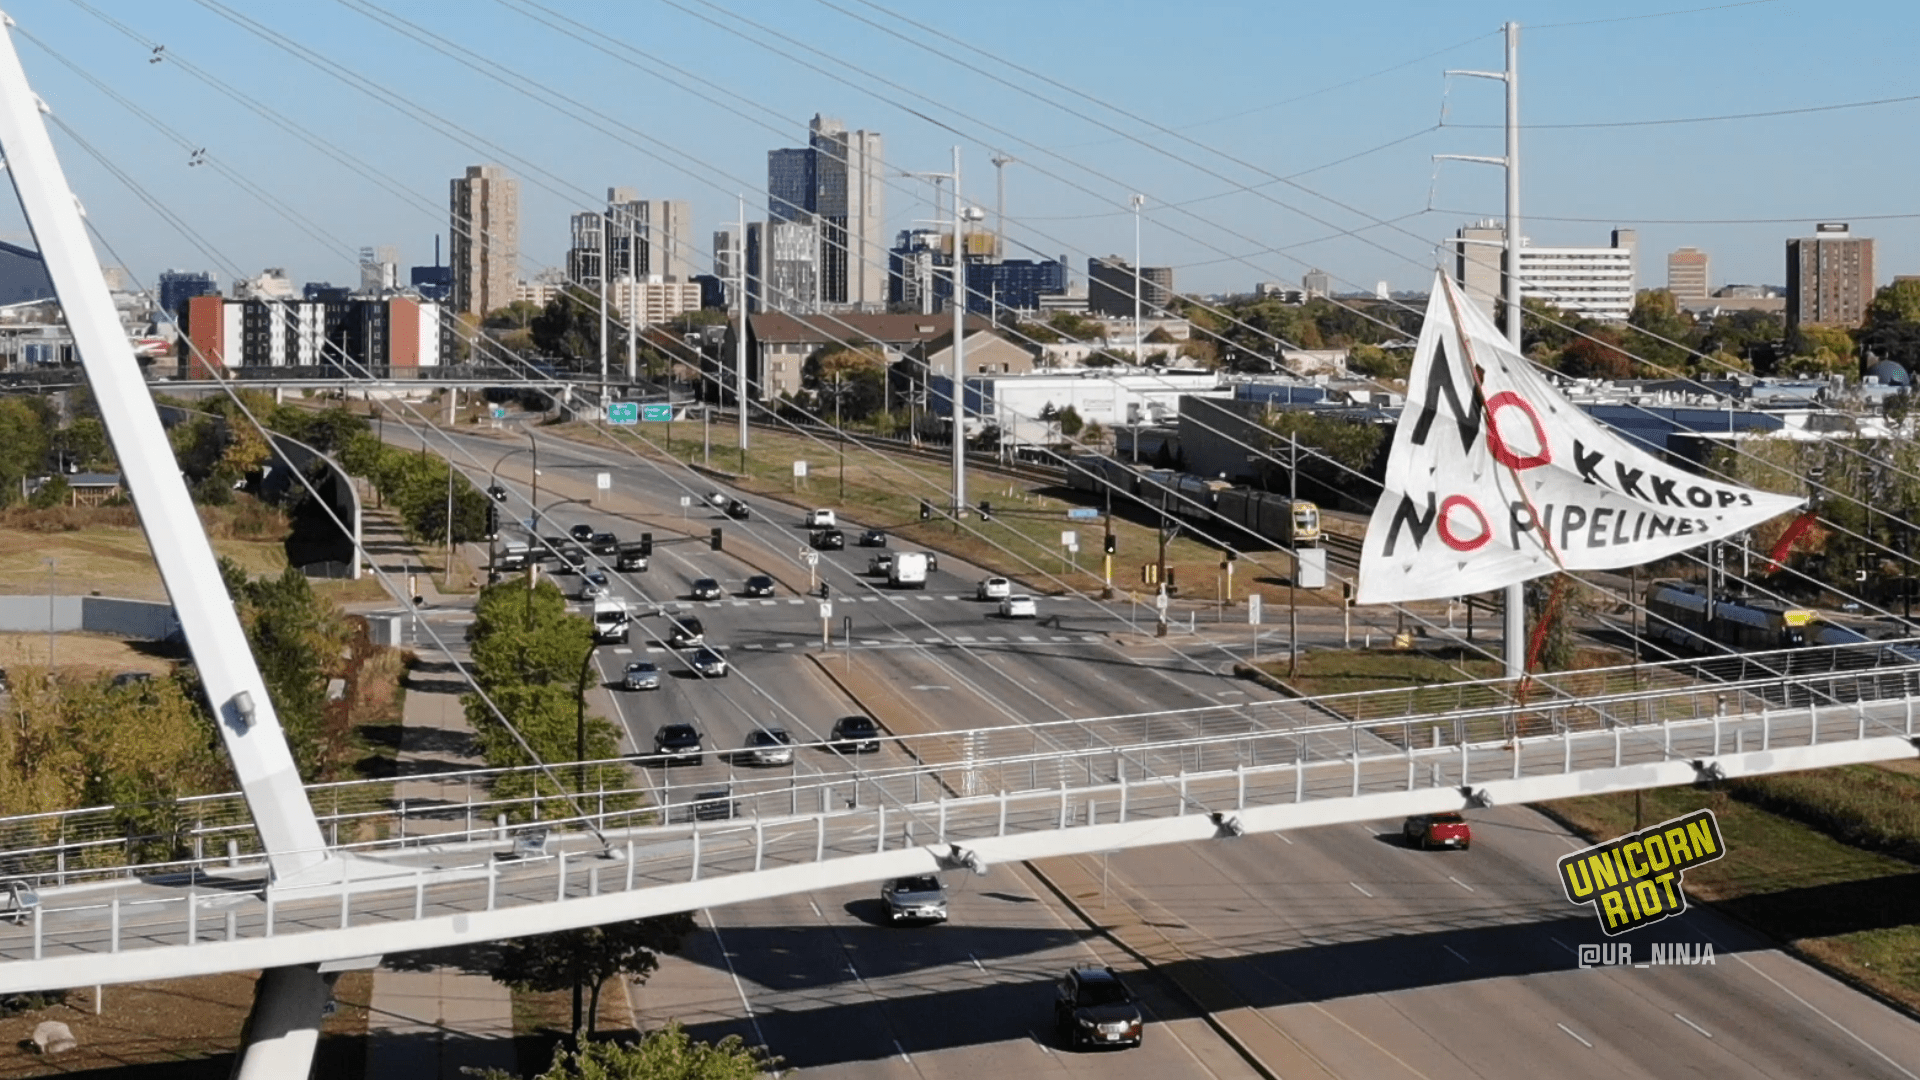 "image: a white triangular banner hangs from the cables above the suspension bridge over Hiawatha Avenue in Minneapolis, oriented towards the right. ""NO KKKOPS, NO PIPELINES"" is written in mostly-black text; in both of the NOs, the letter O is in red. Red ""DANGER"" caution-type plastic tape is attached at the top point of the triangle and at the point on the right. The city skyline is visible behind the bridge, and there are cars on Highway 55/Hiawatha Avenue below the pedestrian bridge."